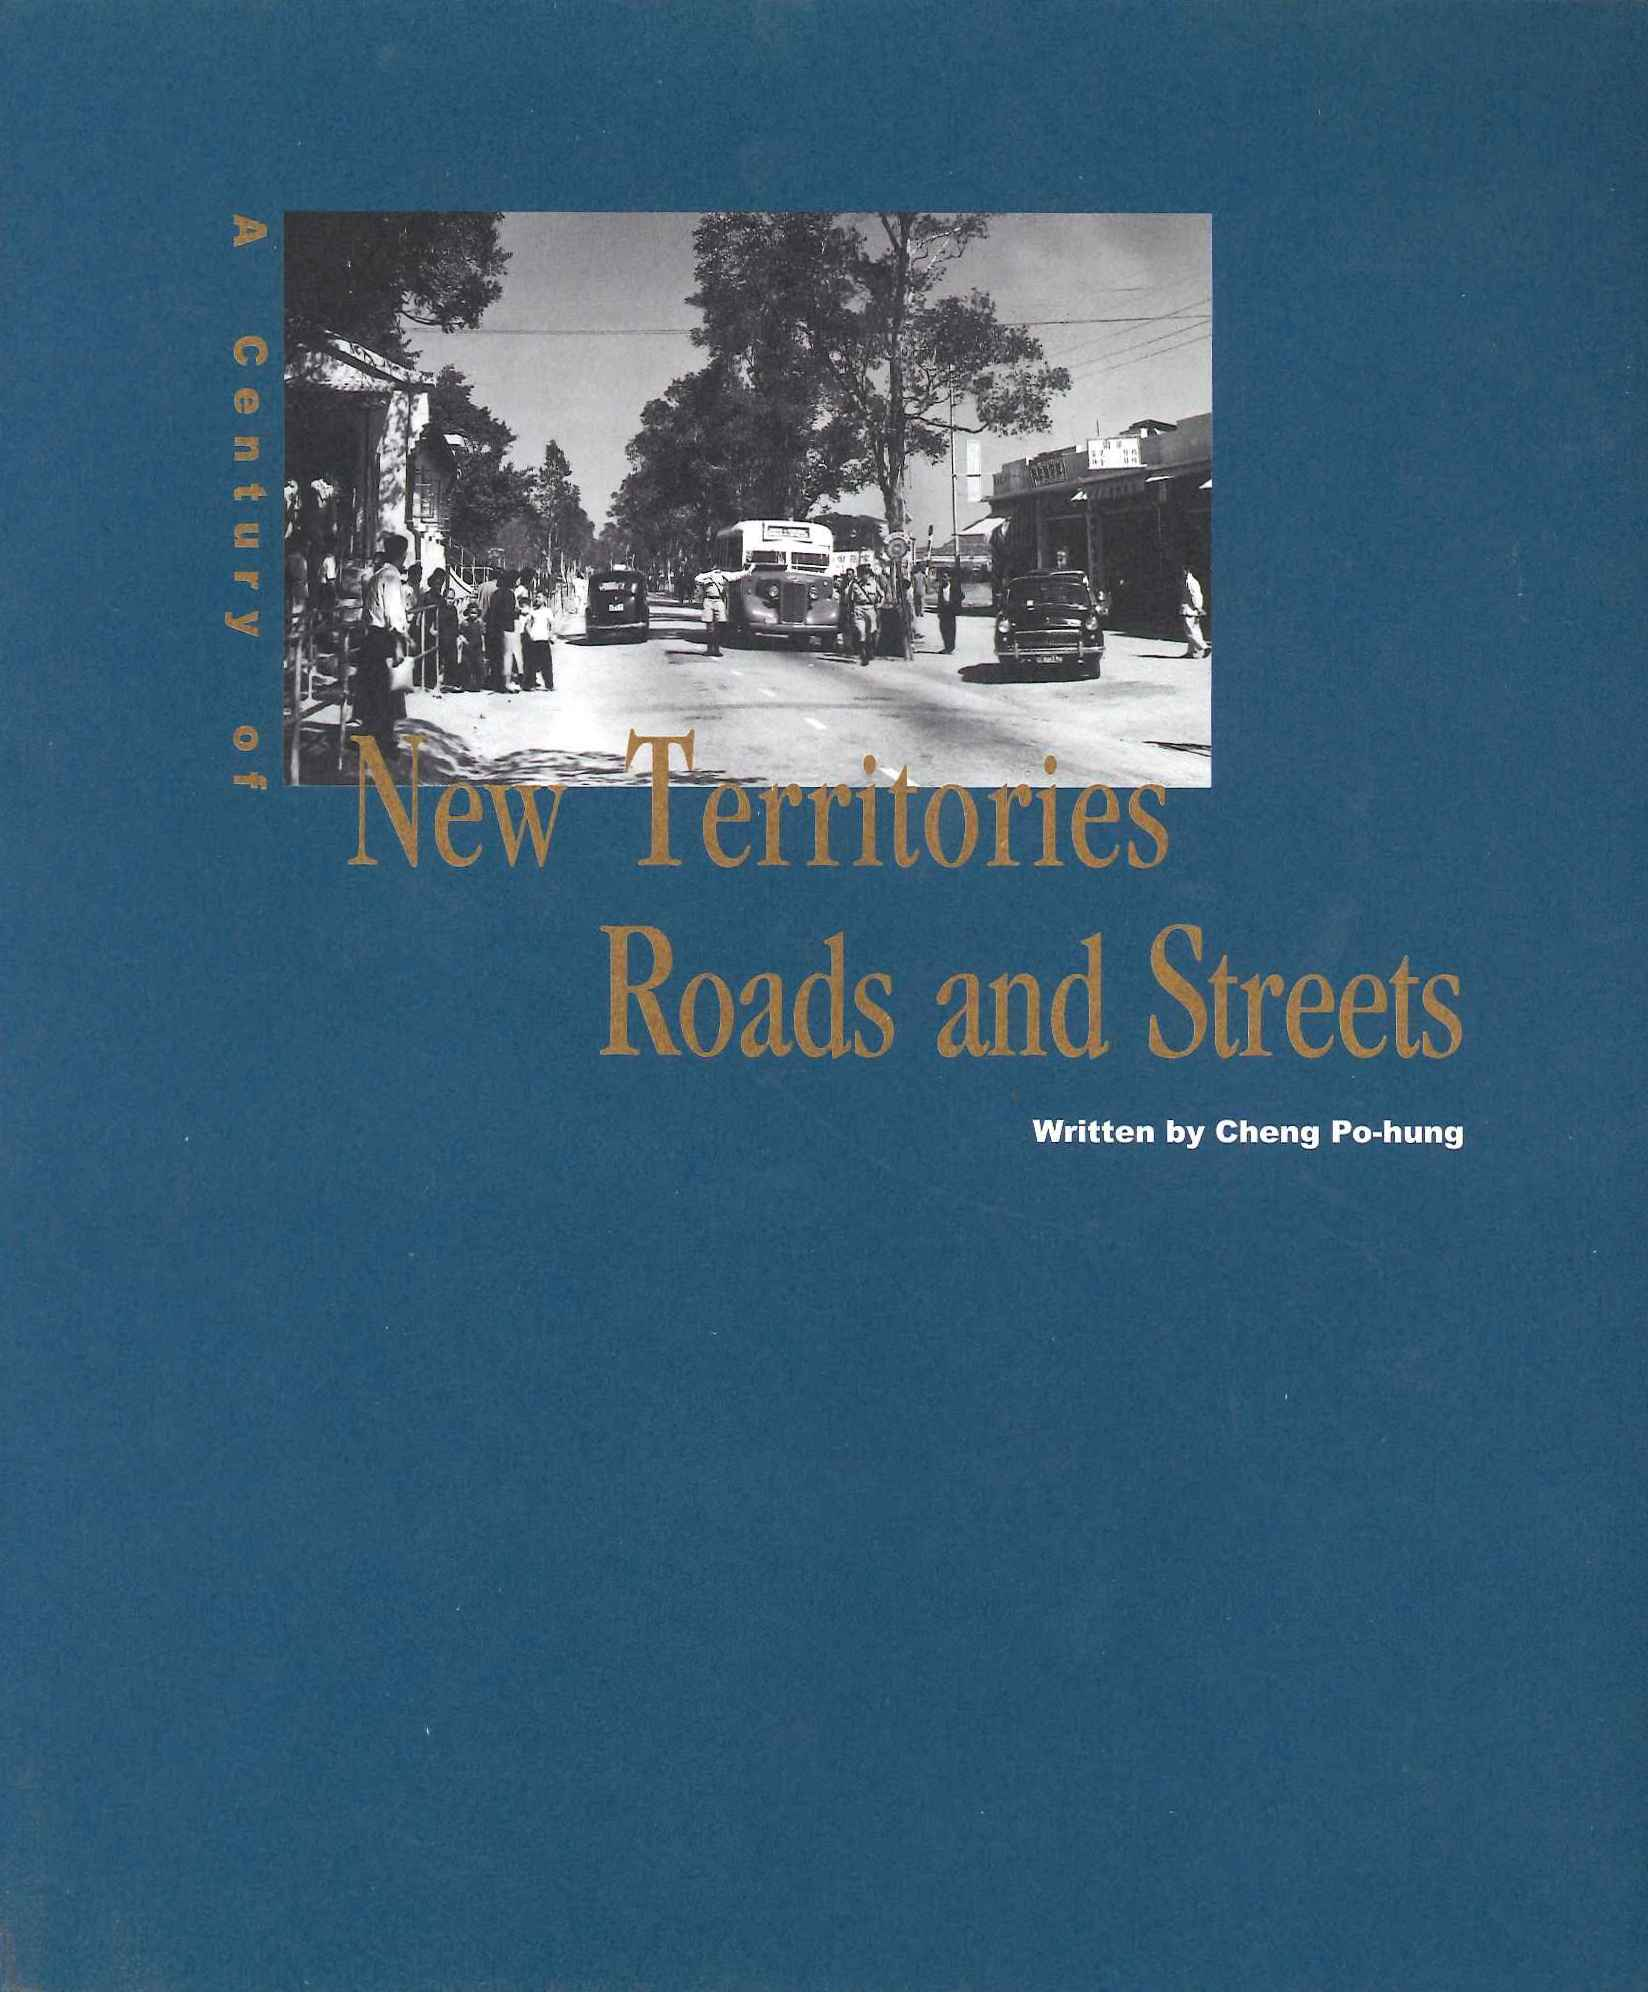 A CENTURY OF NEW TERRITORIES ROADS AND STREETS新界街道百年[英文版]